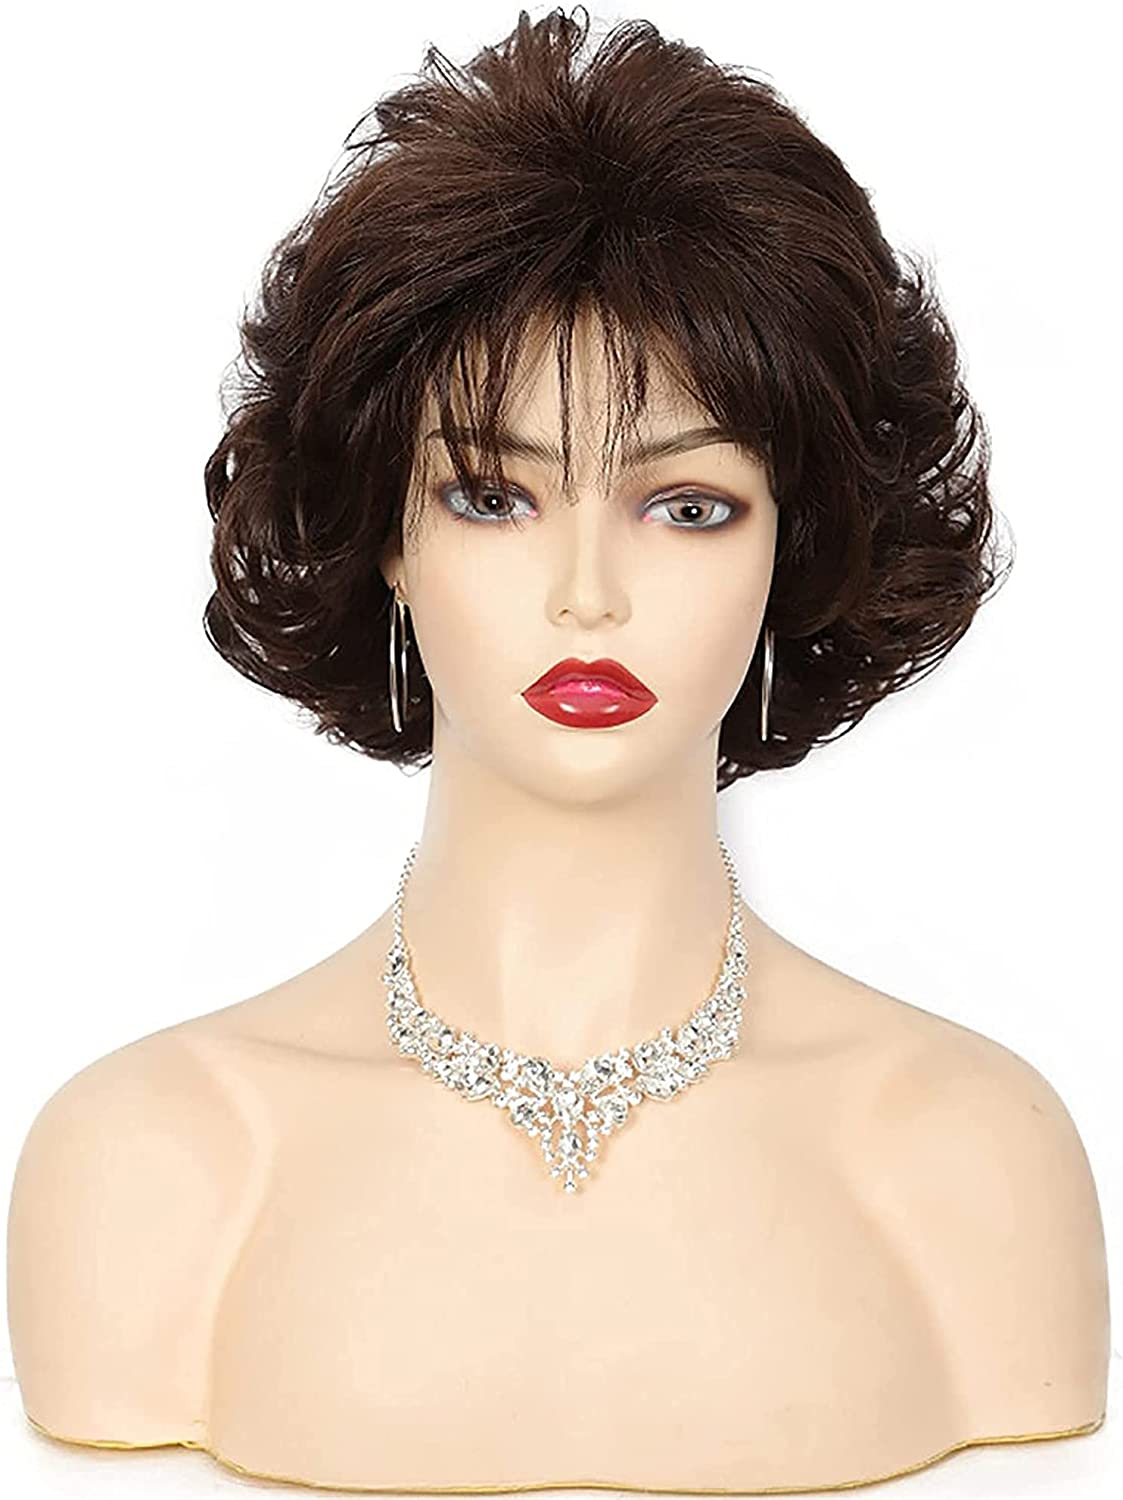 LCNING Wig Wigs 10 Inch Fashion Bombing new work Curly Special Short Elderly Direct sale of manufacturer